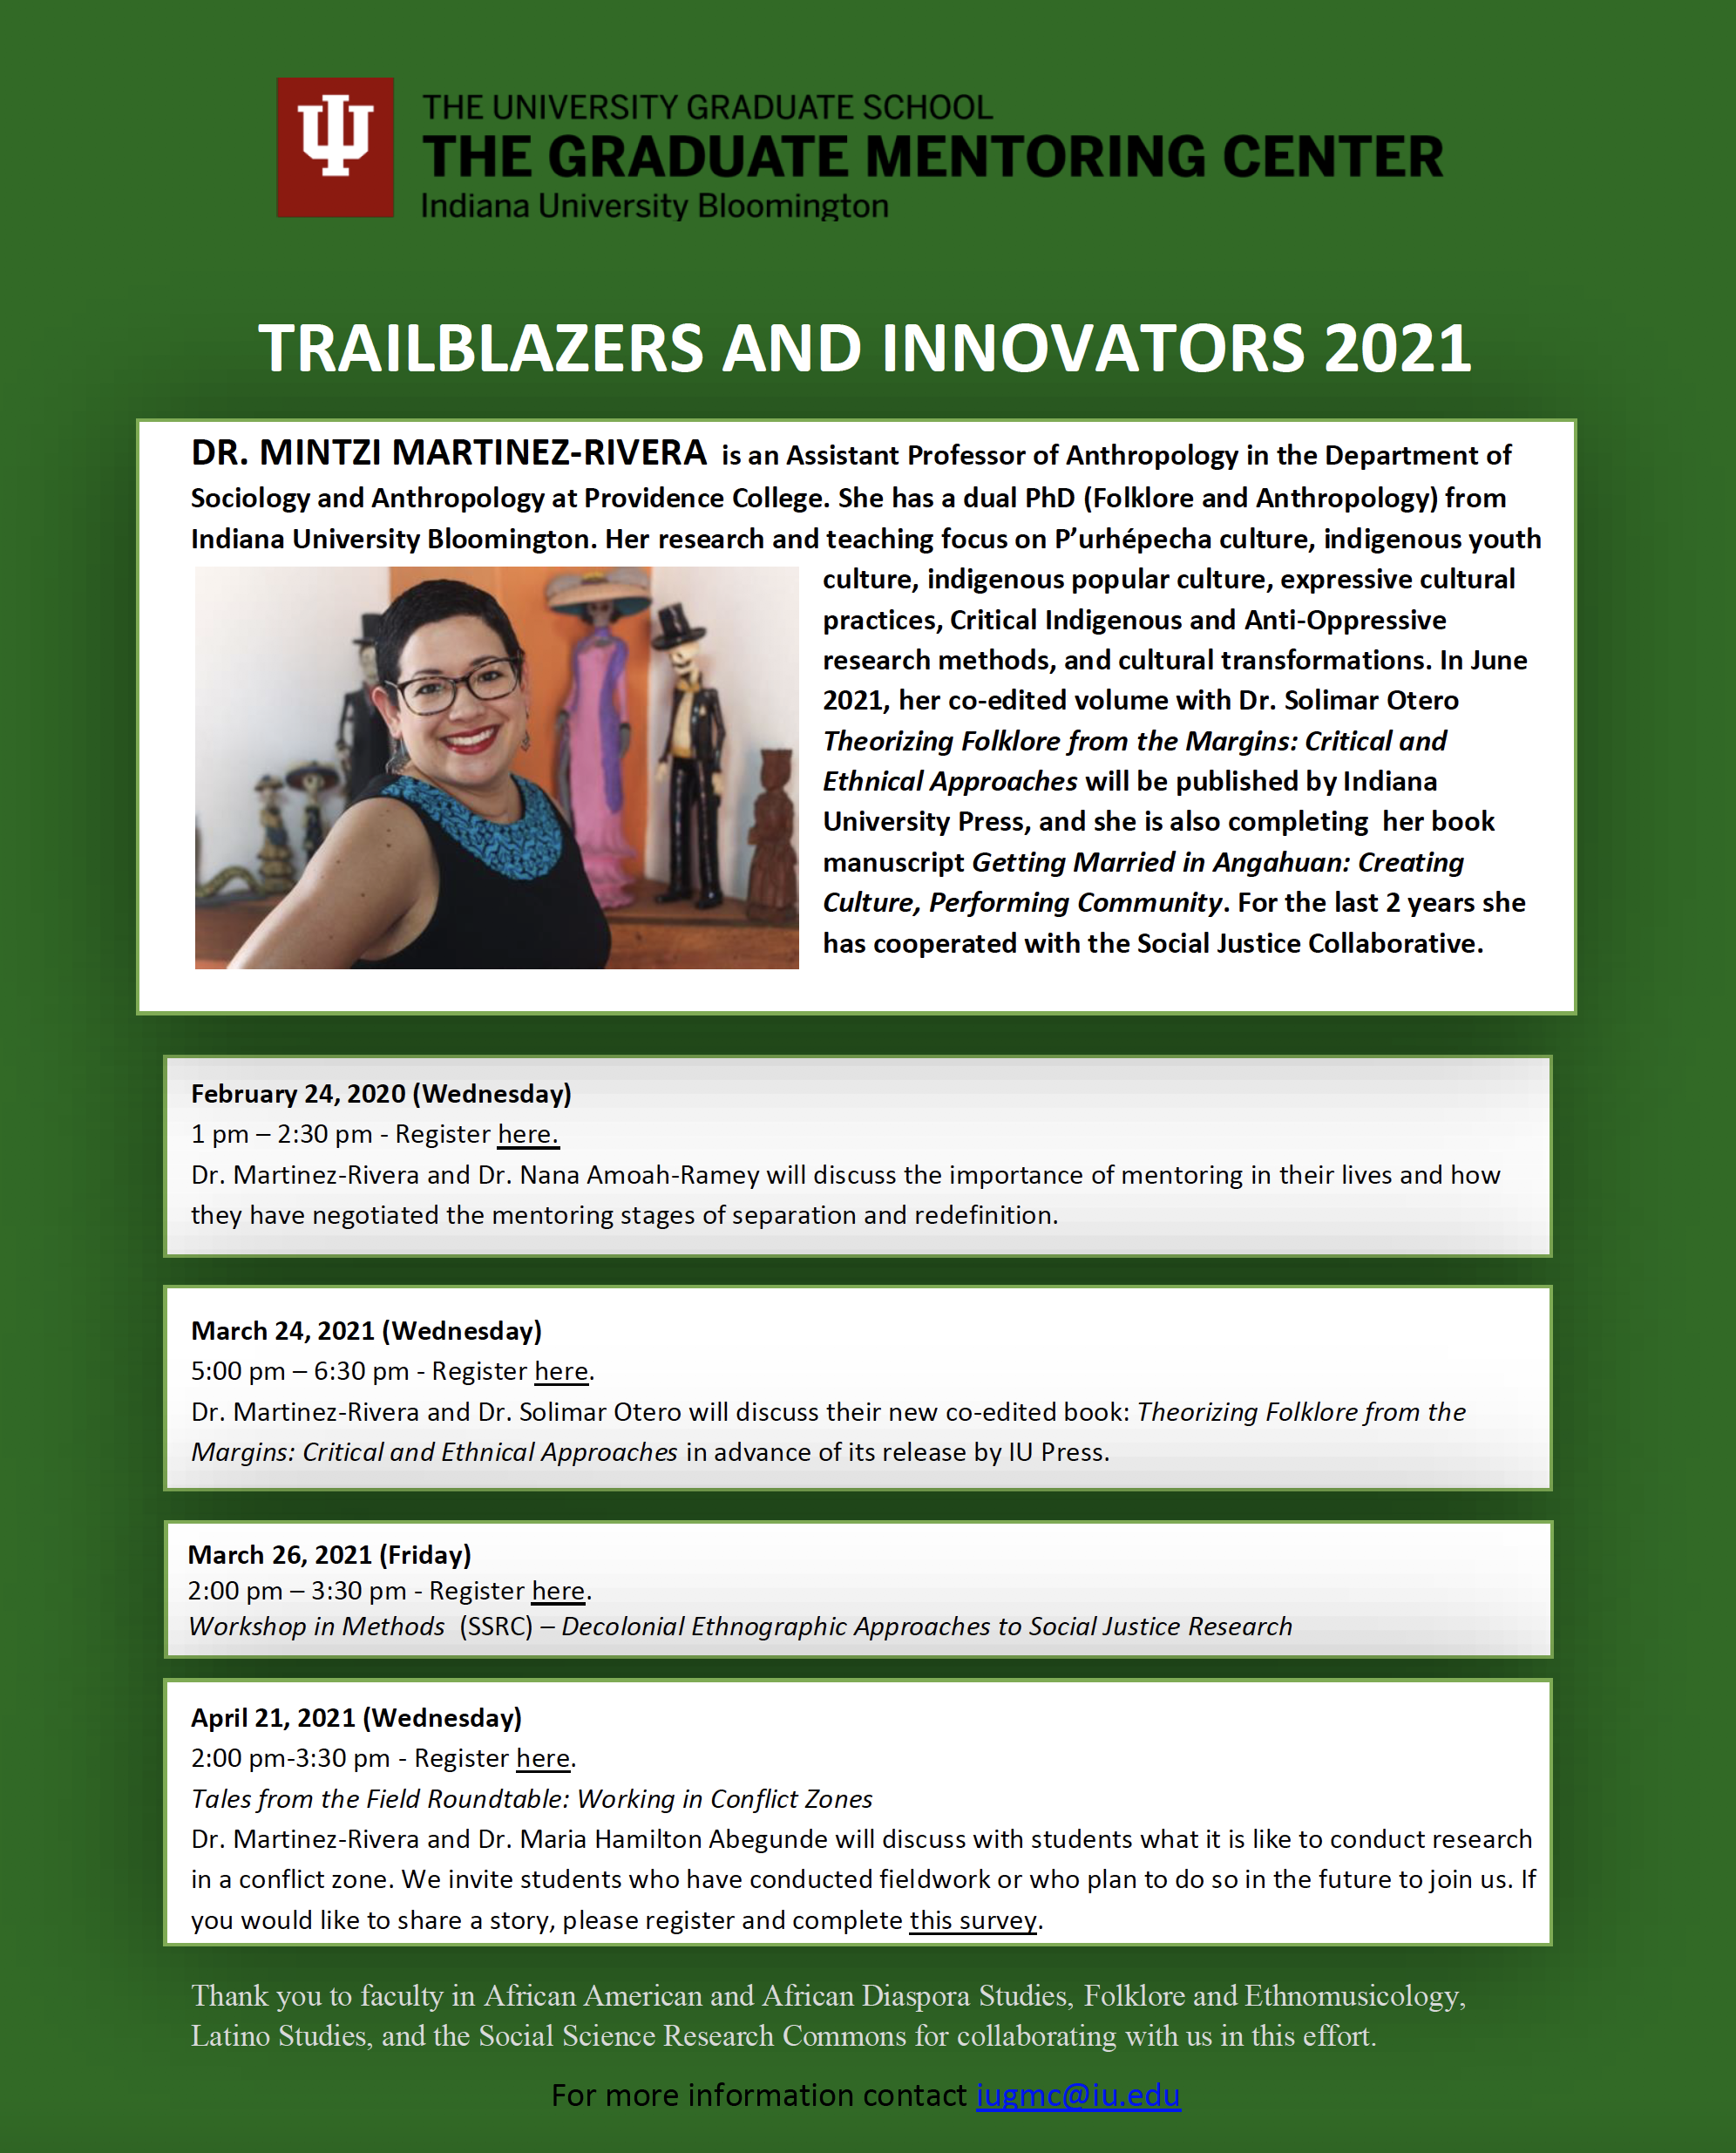 TRAILBLAZERS AND INNOVATORS 2021